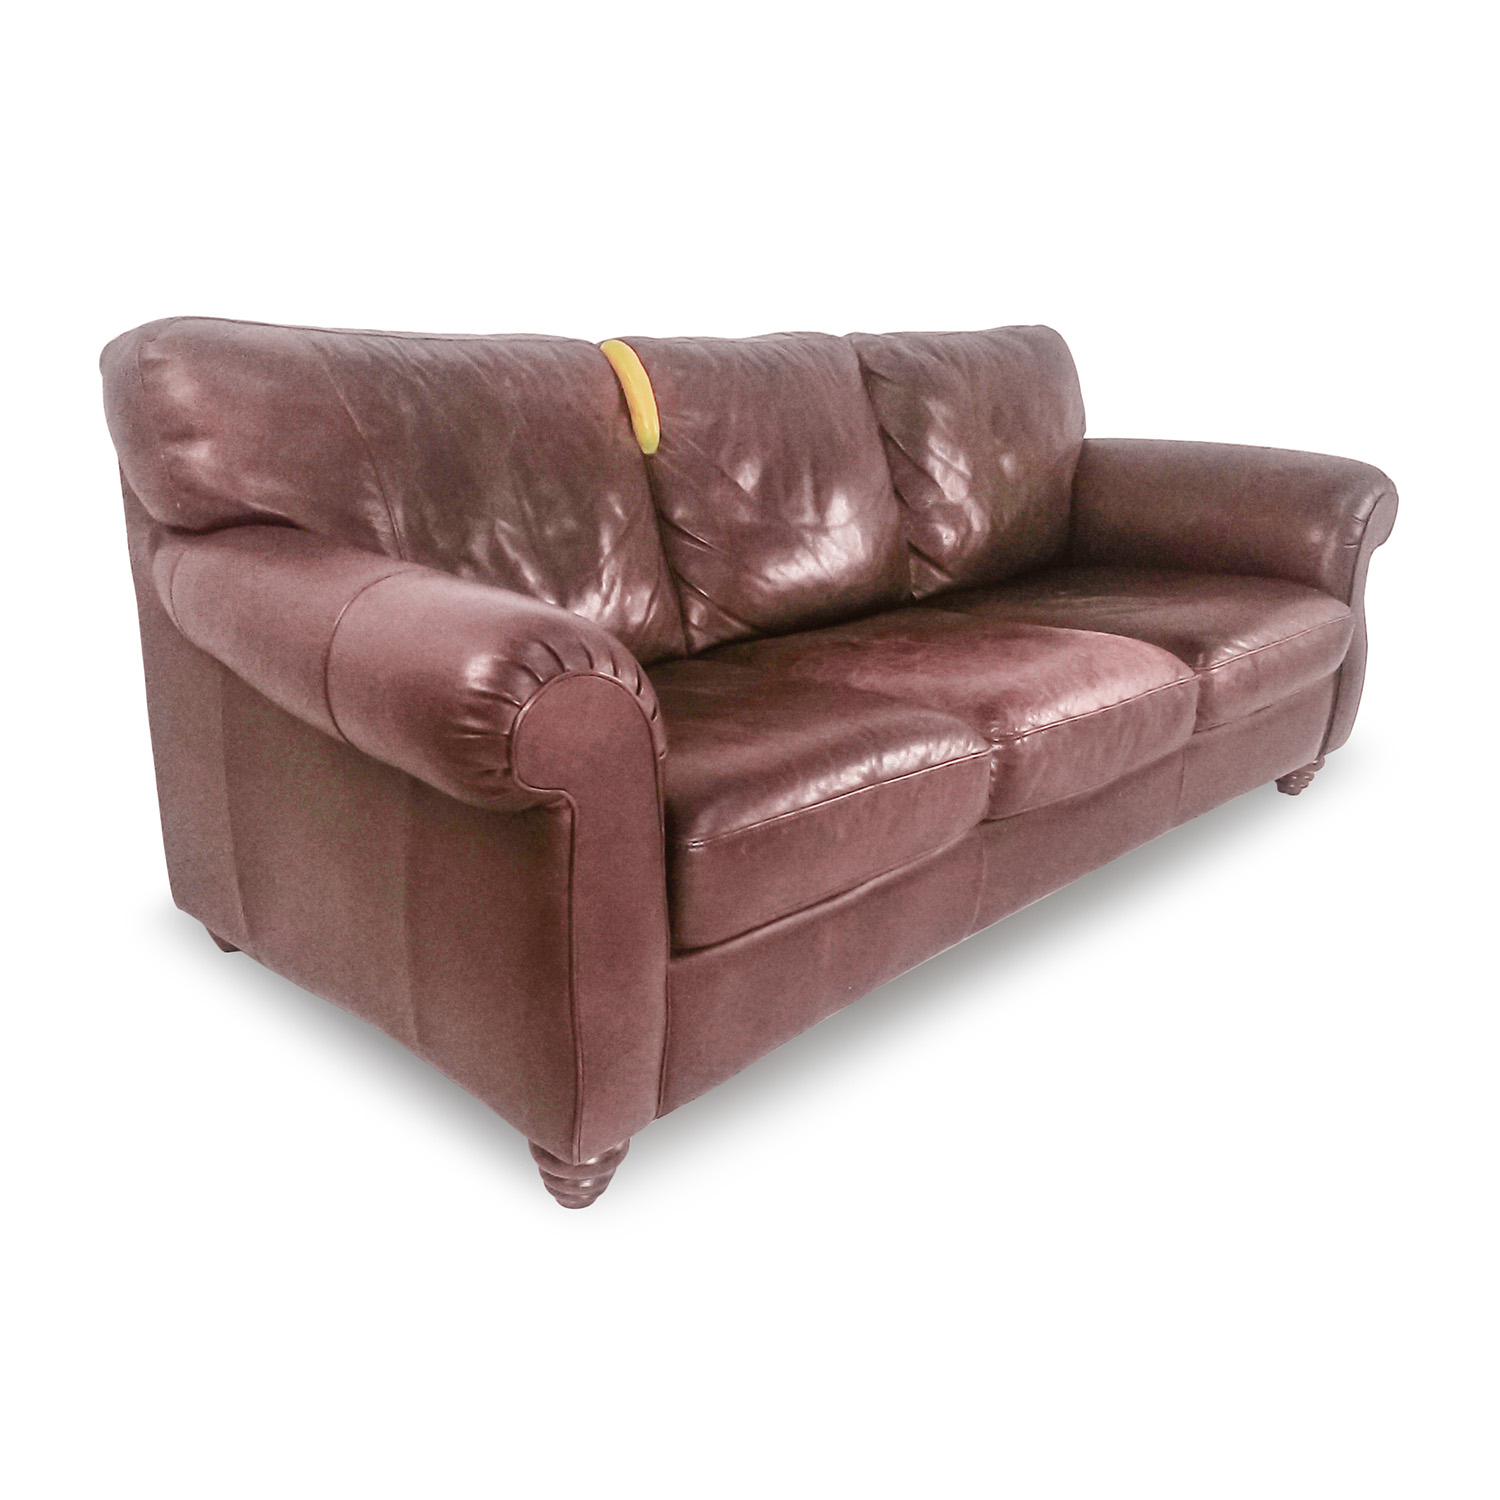 85 Off Natuzzi Natuzzi Brown Leather Couch Sofas